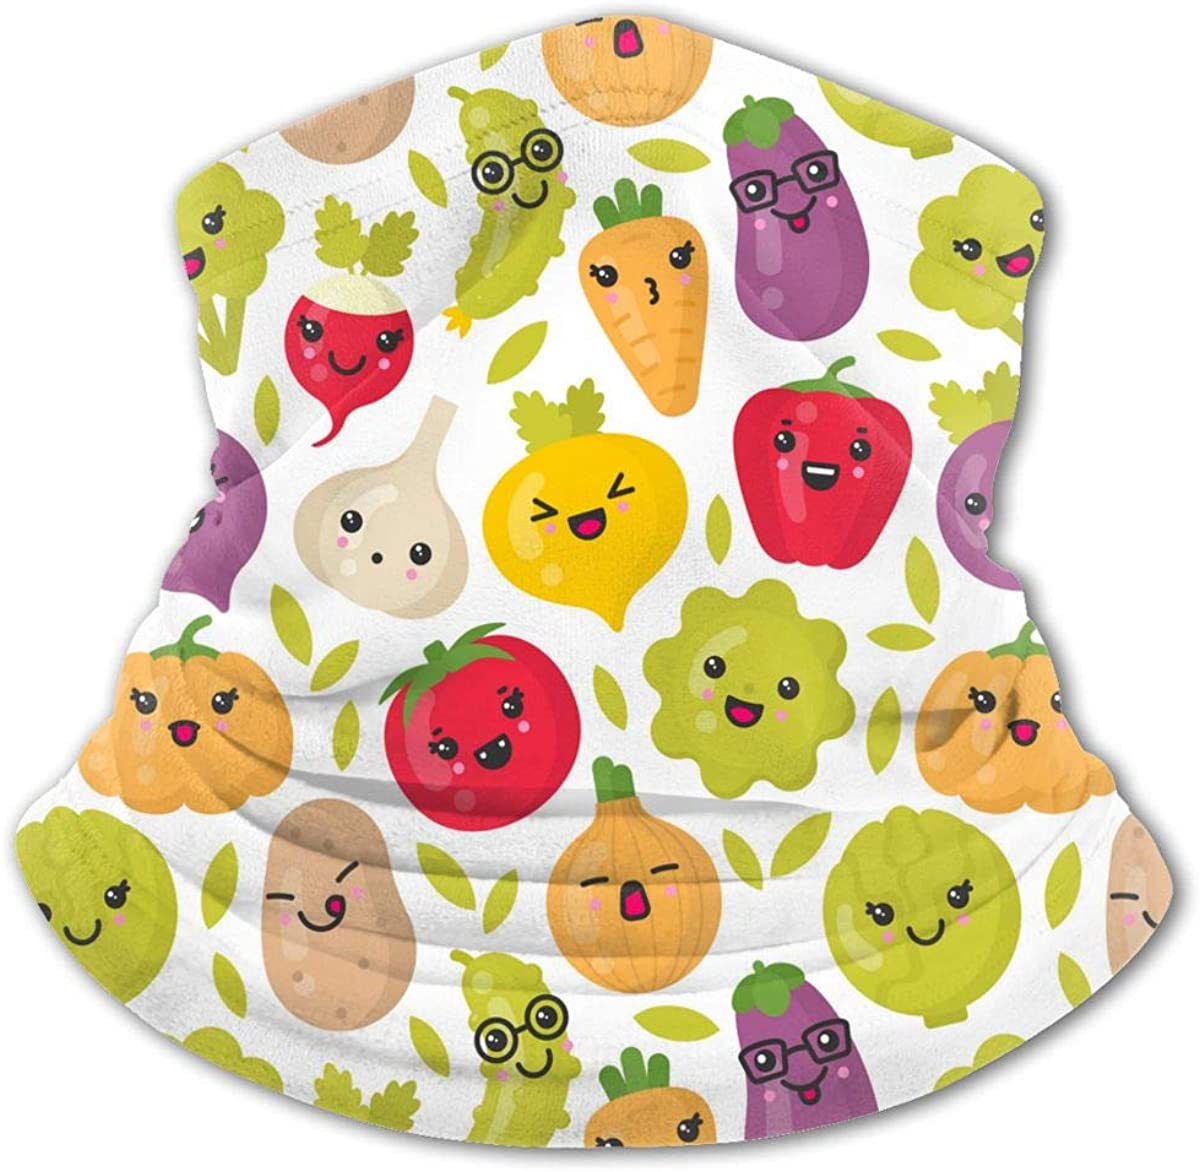 Cute Smiling Vegetables Neck Gaiter Face Mask Bandana Dust Wind Sun UV Balaclava for Teen Boy Girl Outdoors